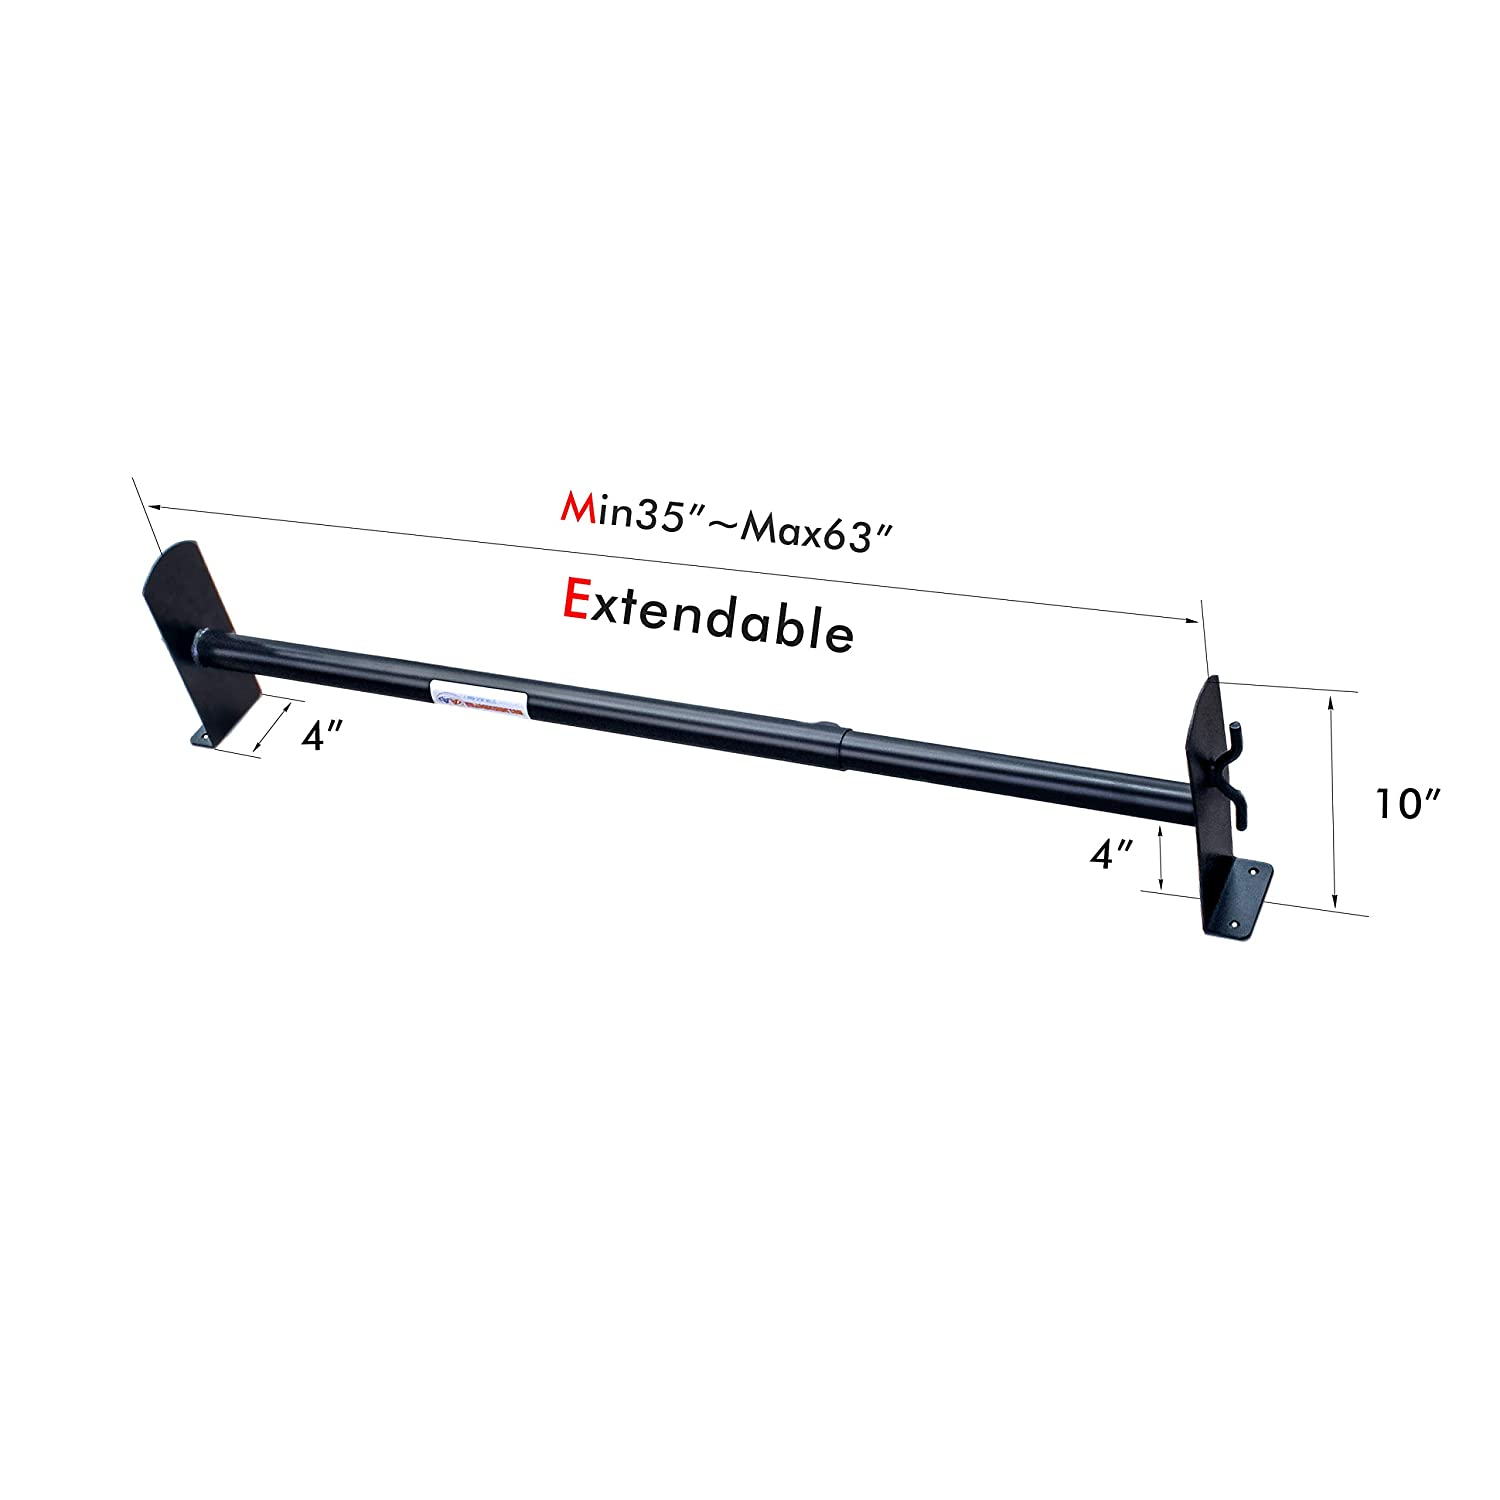 AA-Racks Model DX36 Universal Two Bar Drilling Van Roof Rack Heavy-Duty Adjustable Steel Rack Sandy Black